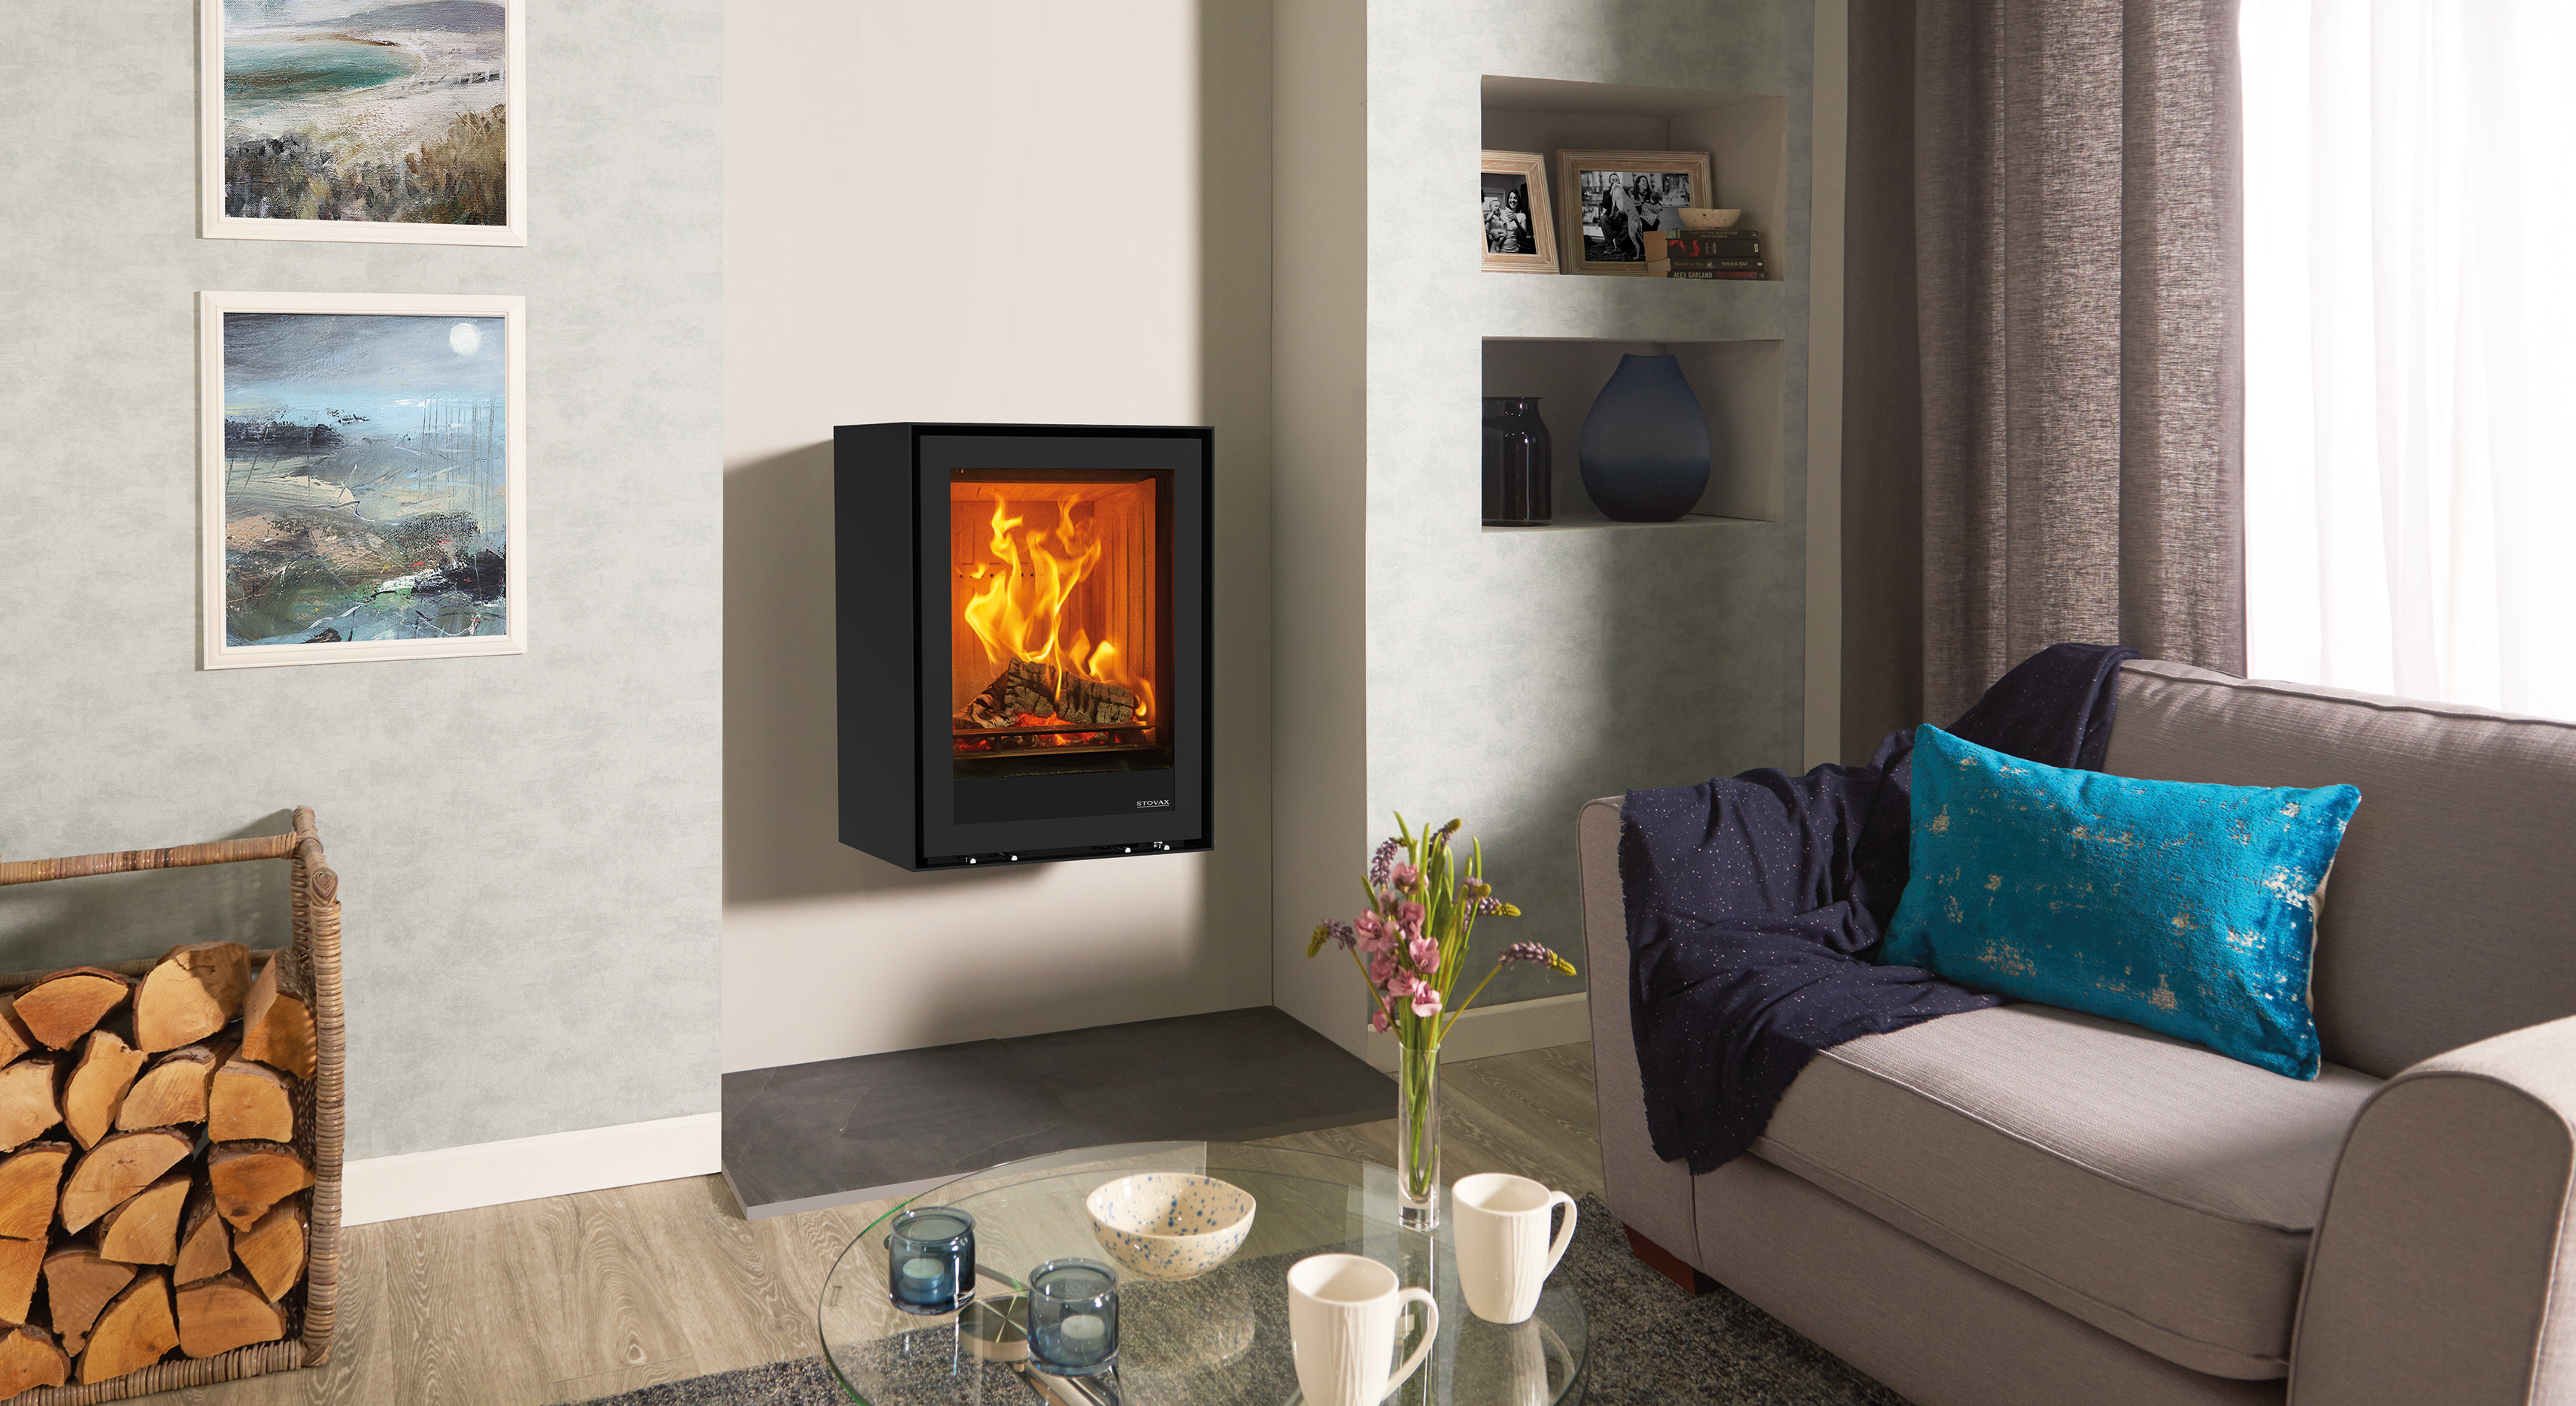 freestanding elise 540t wall mounted wood burning and multi fuel